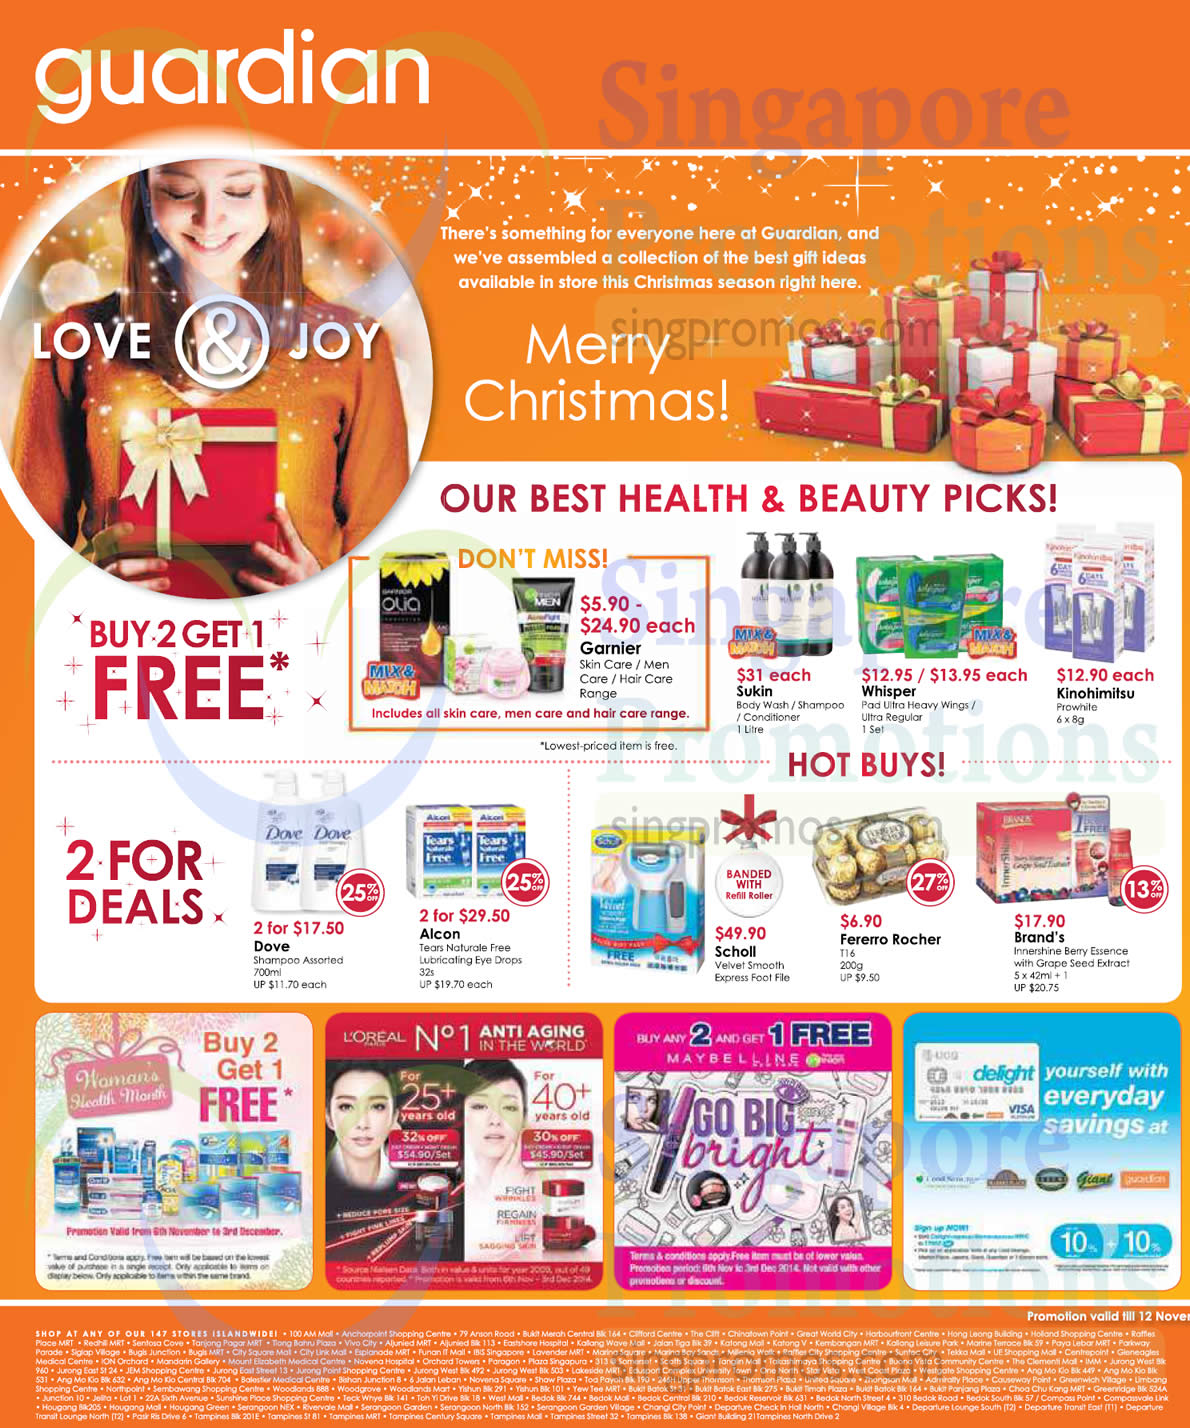 Buy 2 Get 1 Free, 2 For Deals, Hot Buys, Loreal, Maybelline